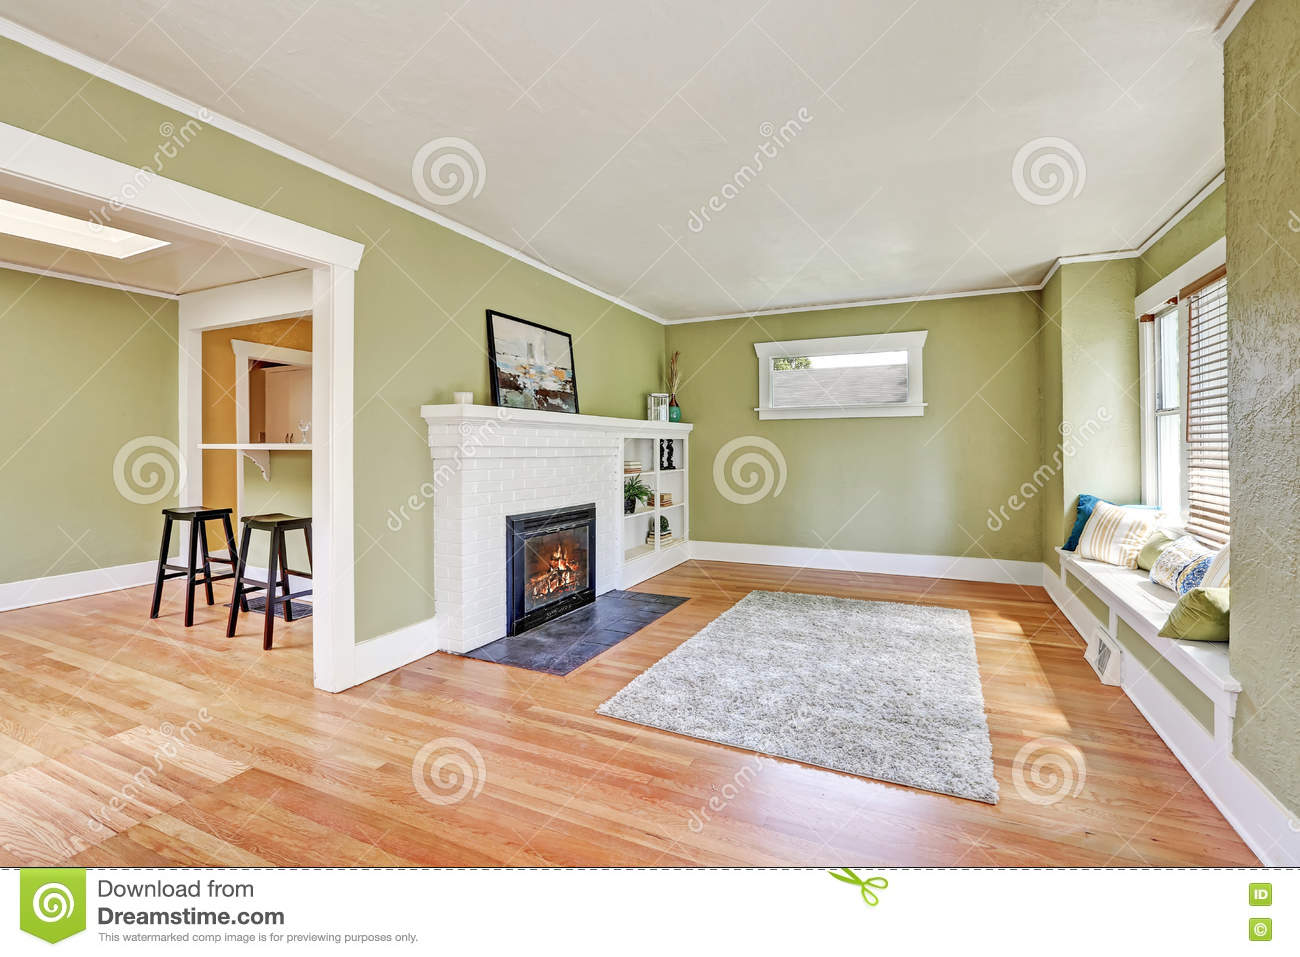 Living room interior design of craftsman house stock photo for Image of interior design